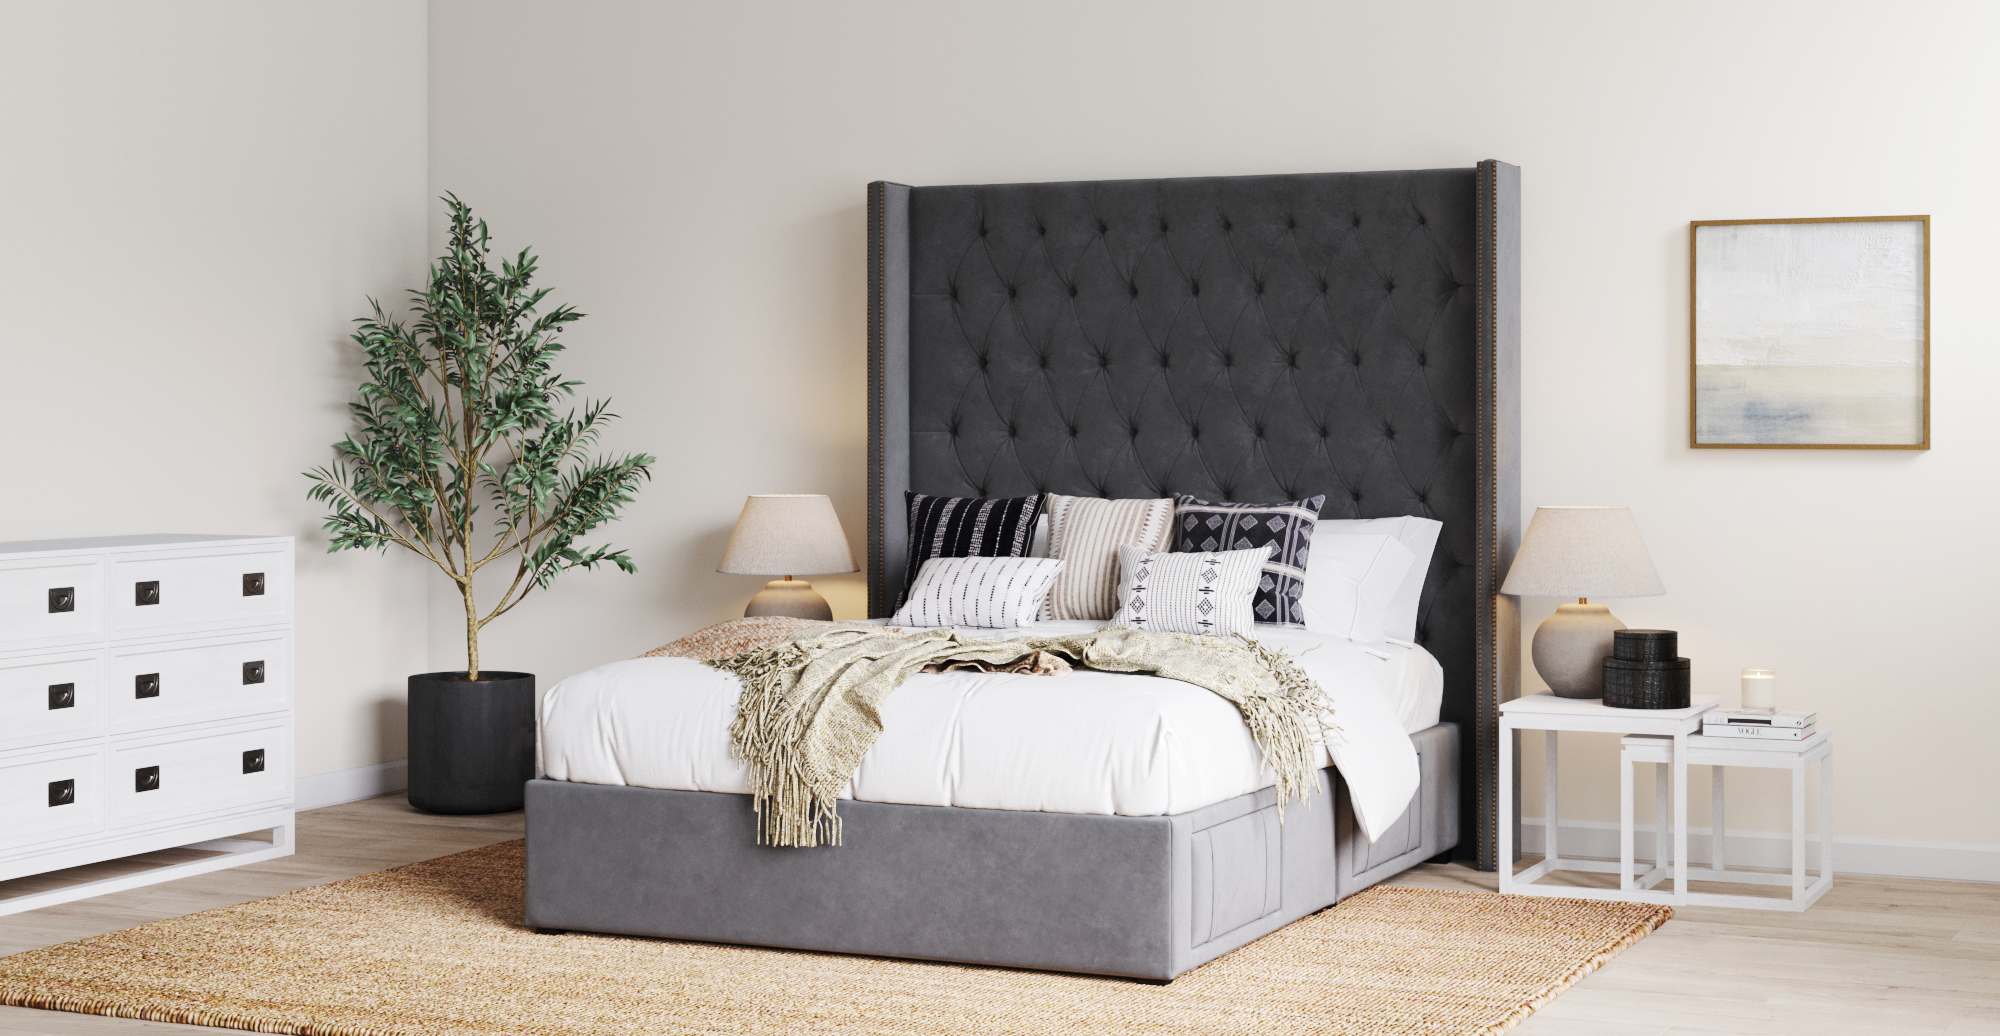 Brosa Stella Tall King Size Upholstered Bed Frame with Drawers styled in classic traditional bedroom